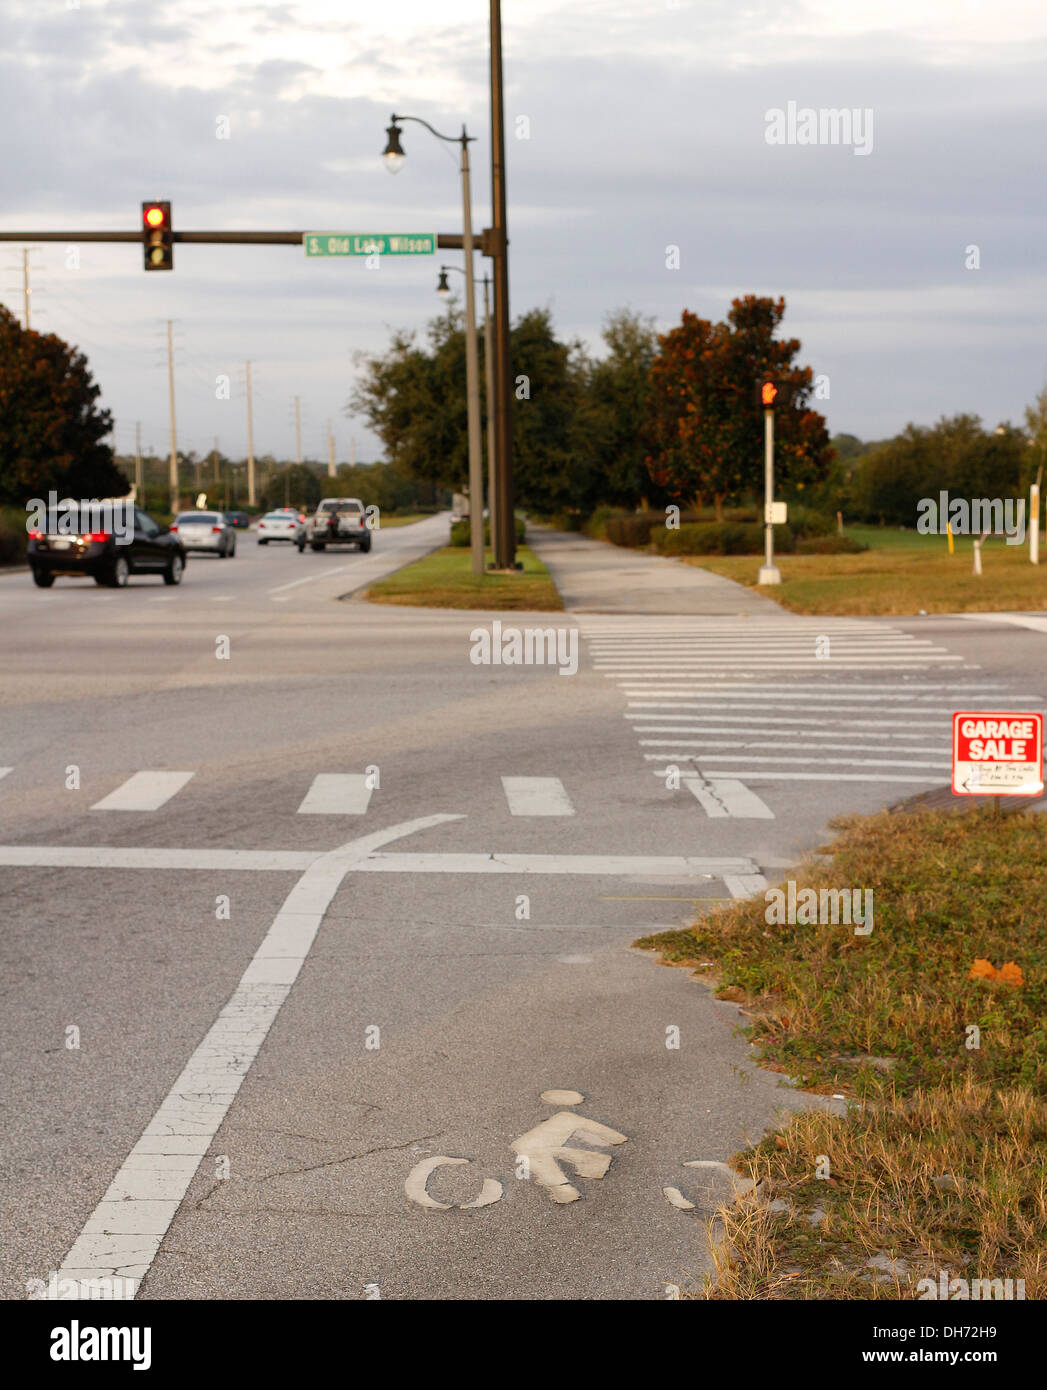 Cycle track markings on at a busy interstate high intersection, Partly worn out partly overgrown, November 2013 - Stock Image